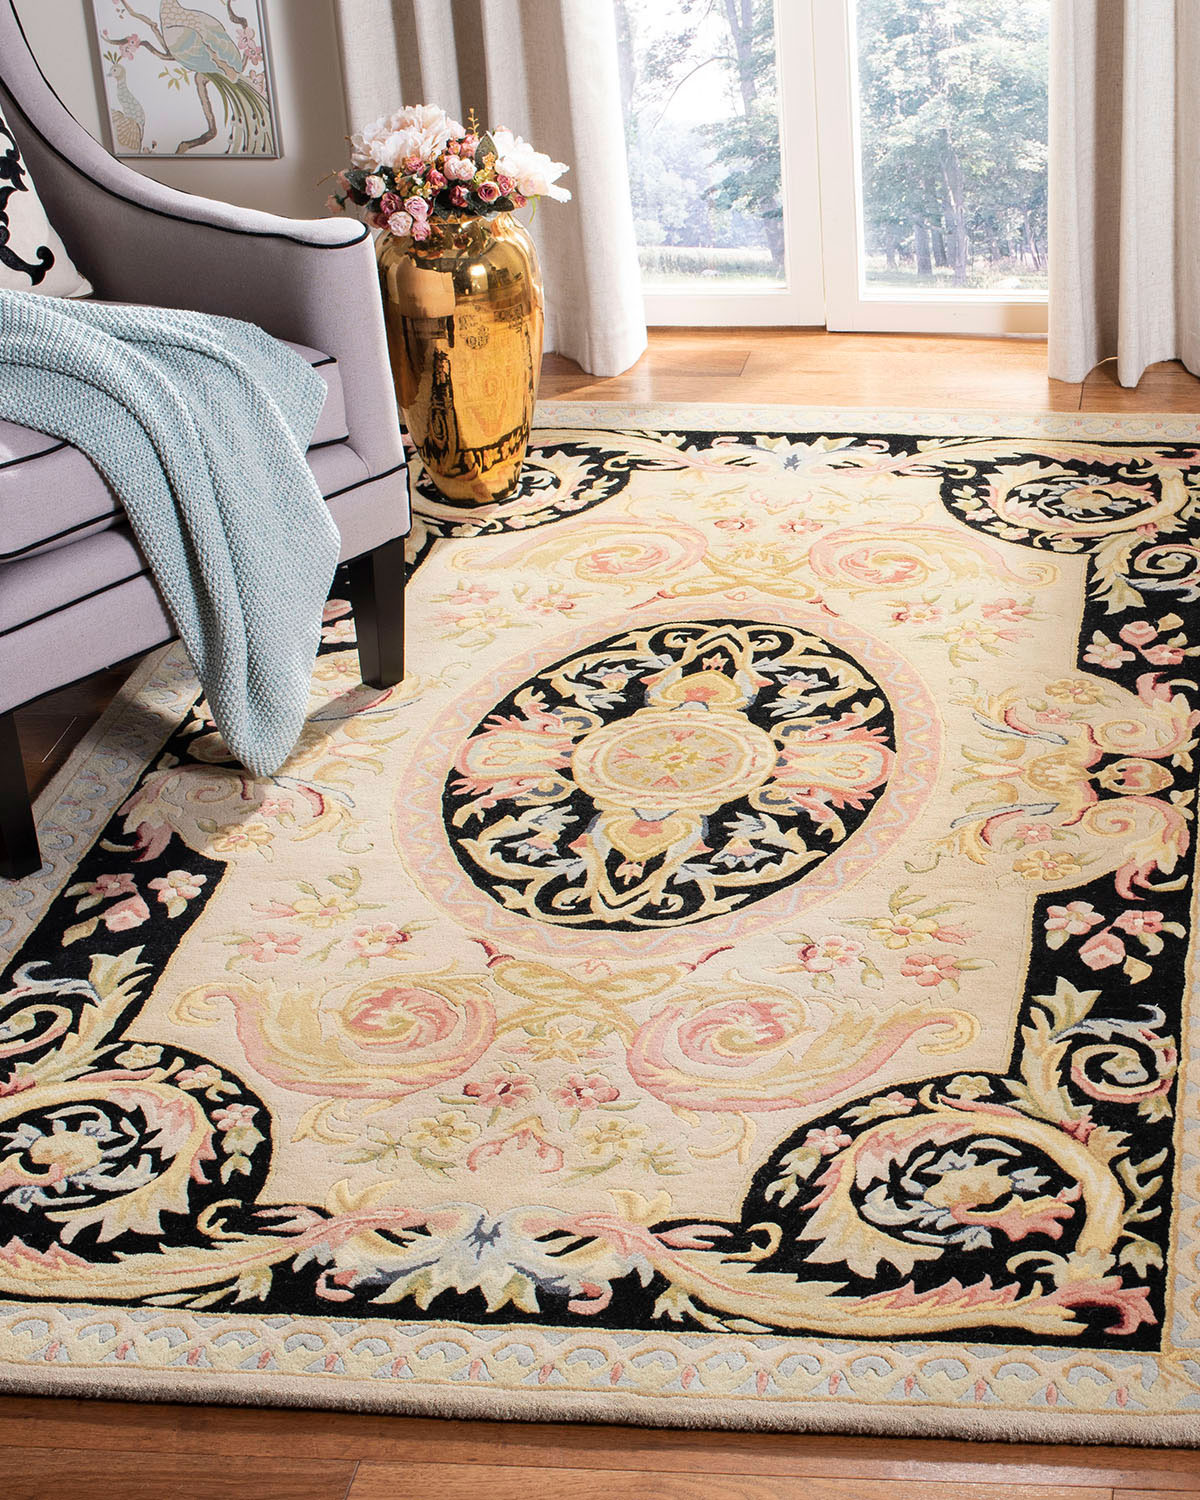 Mystical Garden Rug, 3' x 5' Product Image